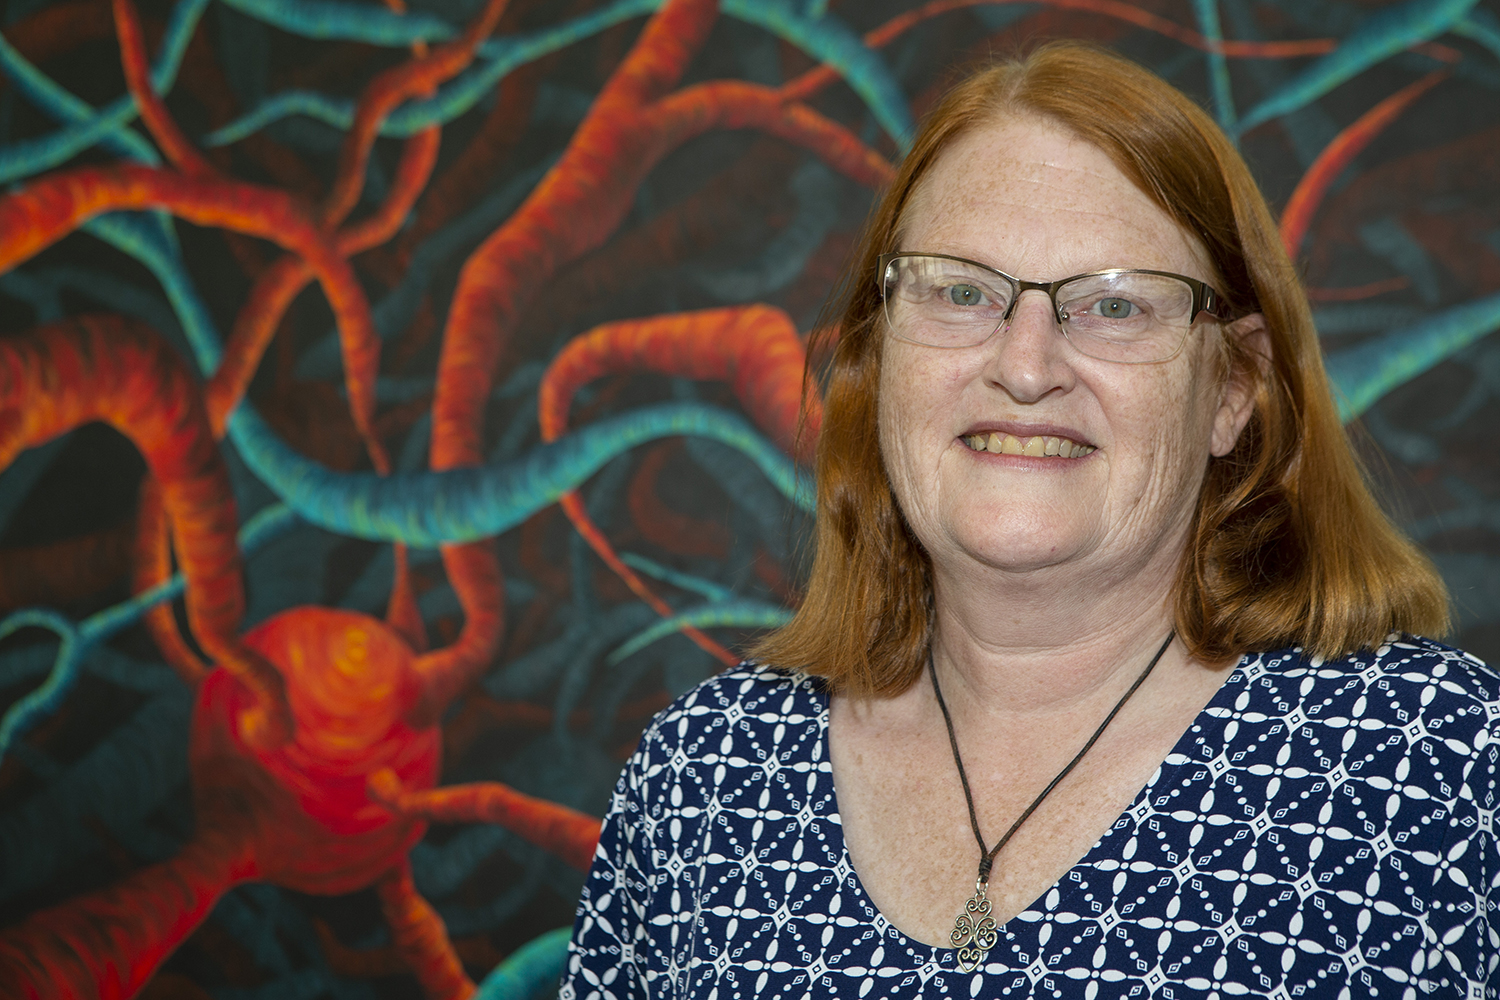 Professor of Physical Therapy Kathleen Sluka poses in front of her artwork in the Pappajohn Biomedical Discovery Building on July 29, 2019. Her artwork focuses on the life of cells.